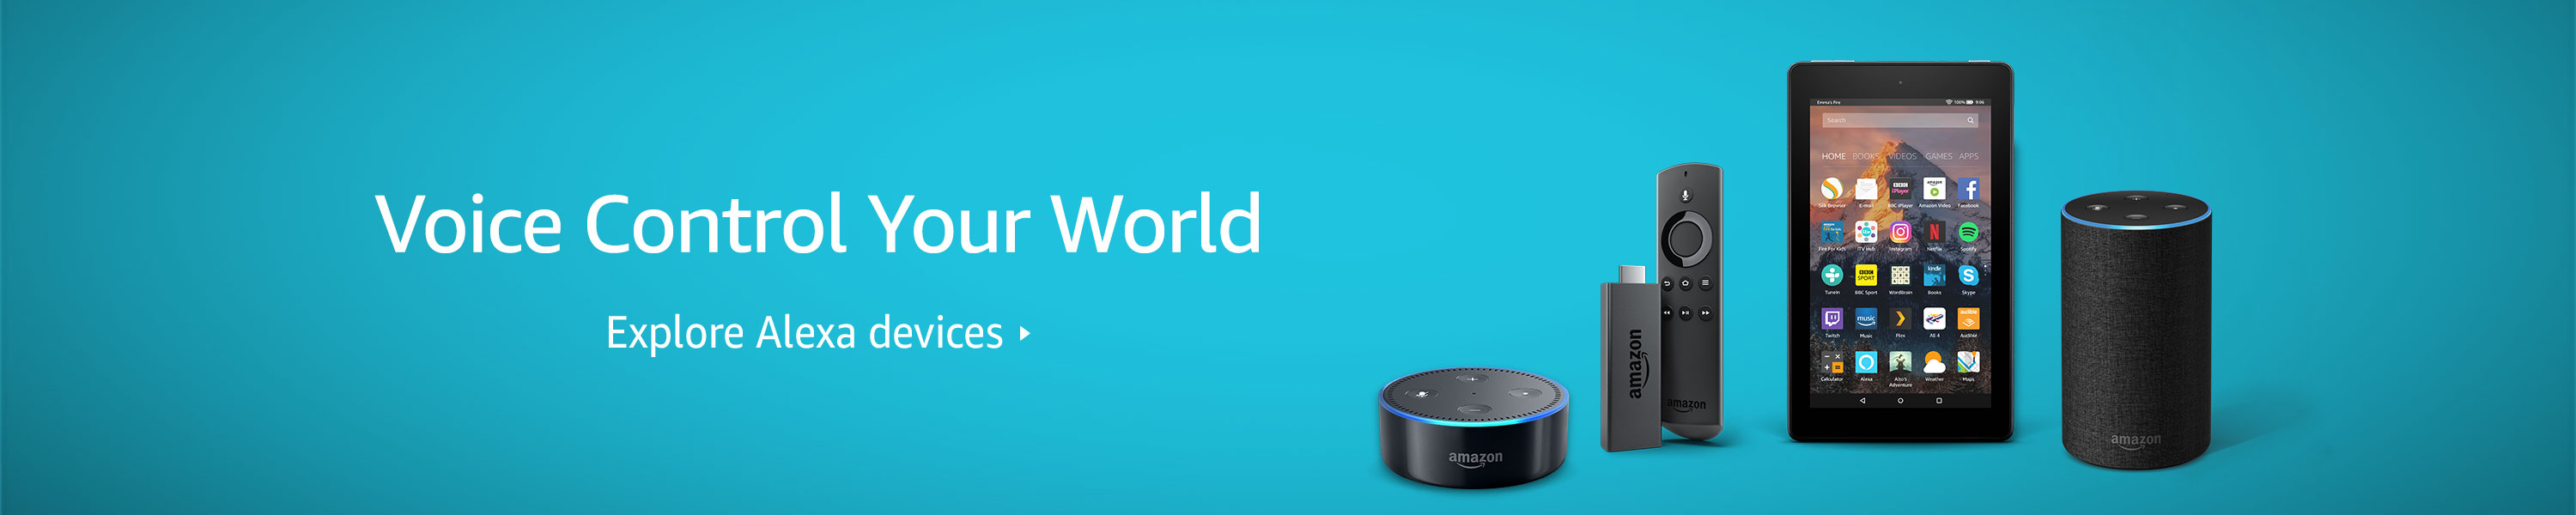 Voice Control Your World